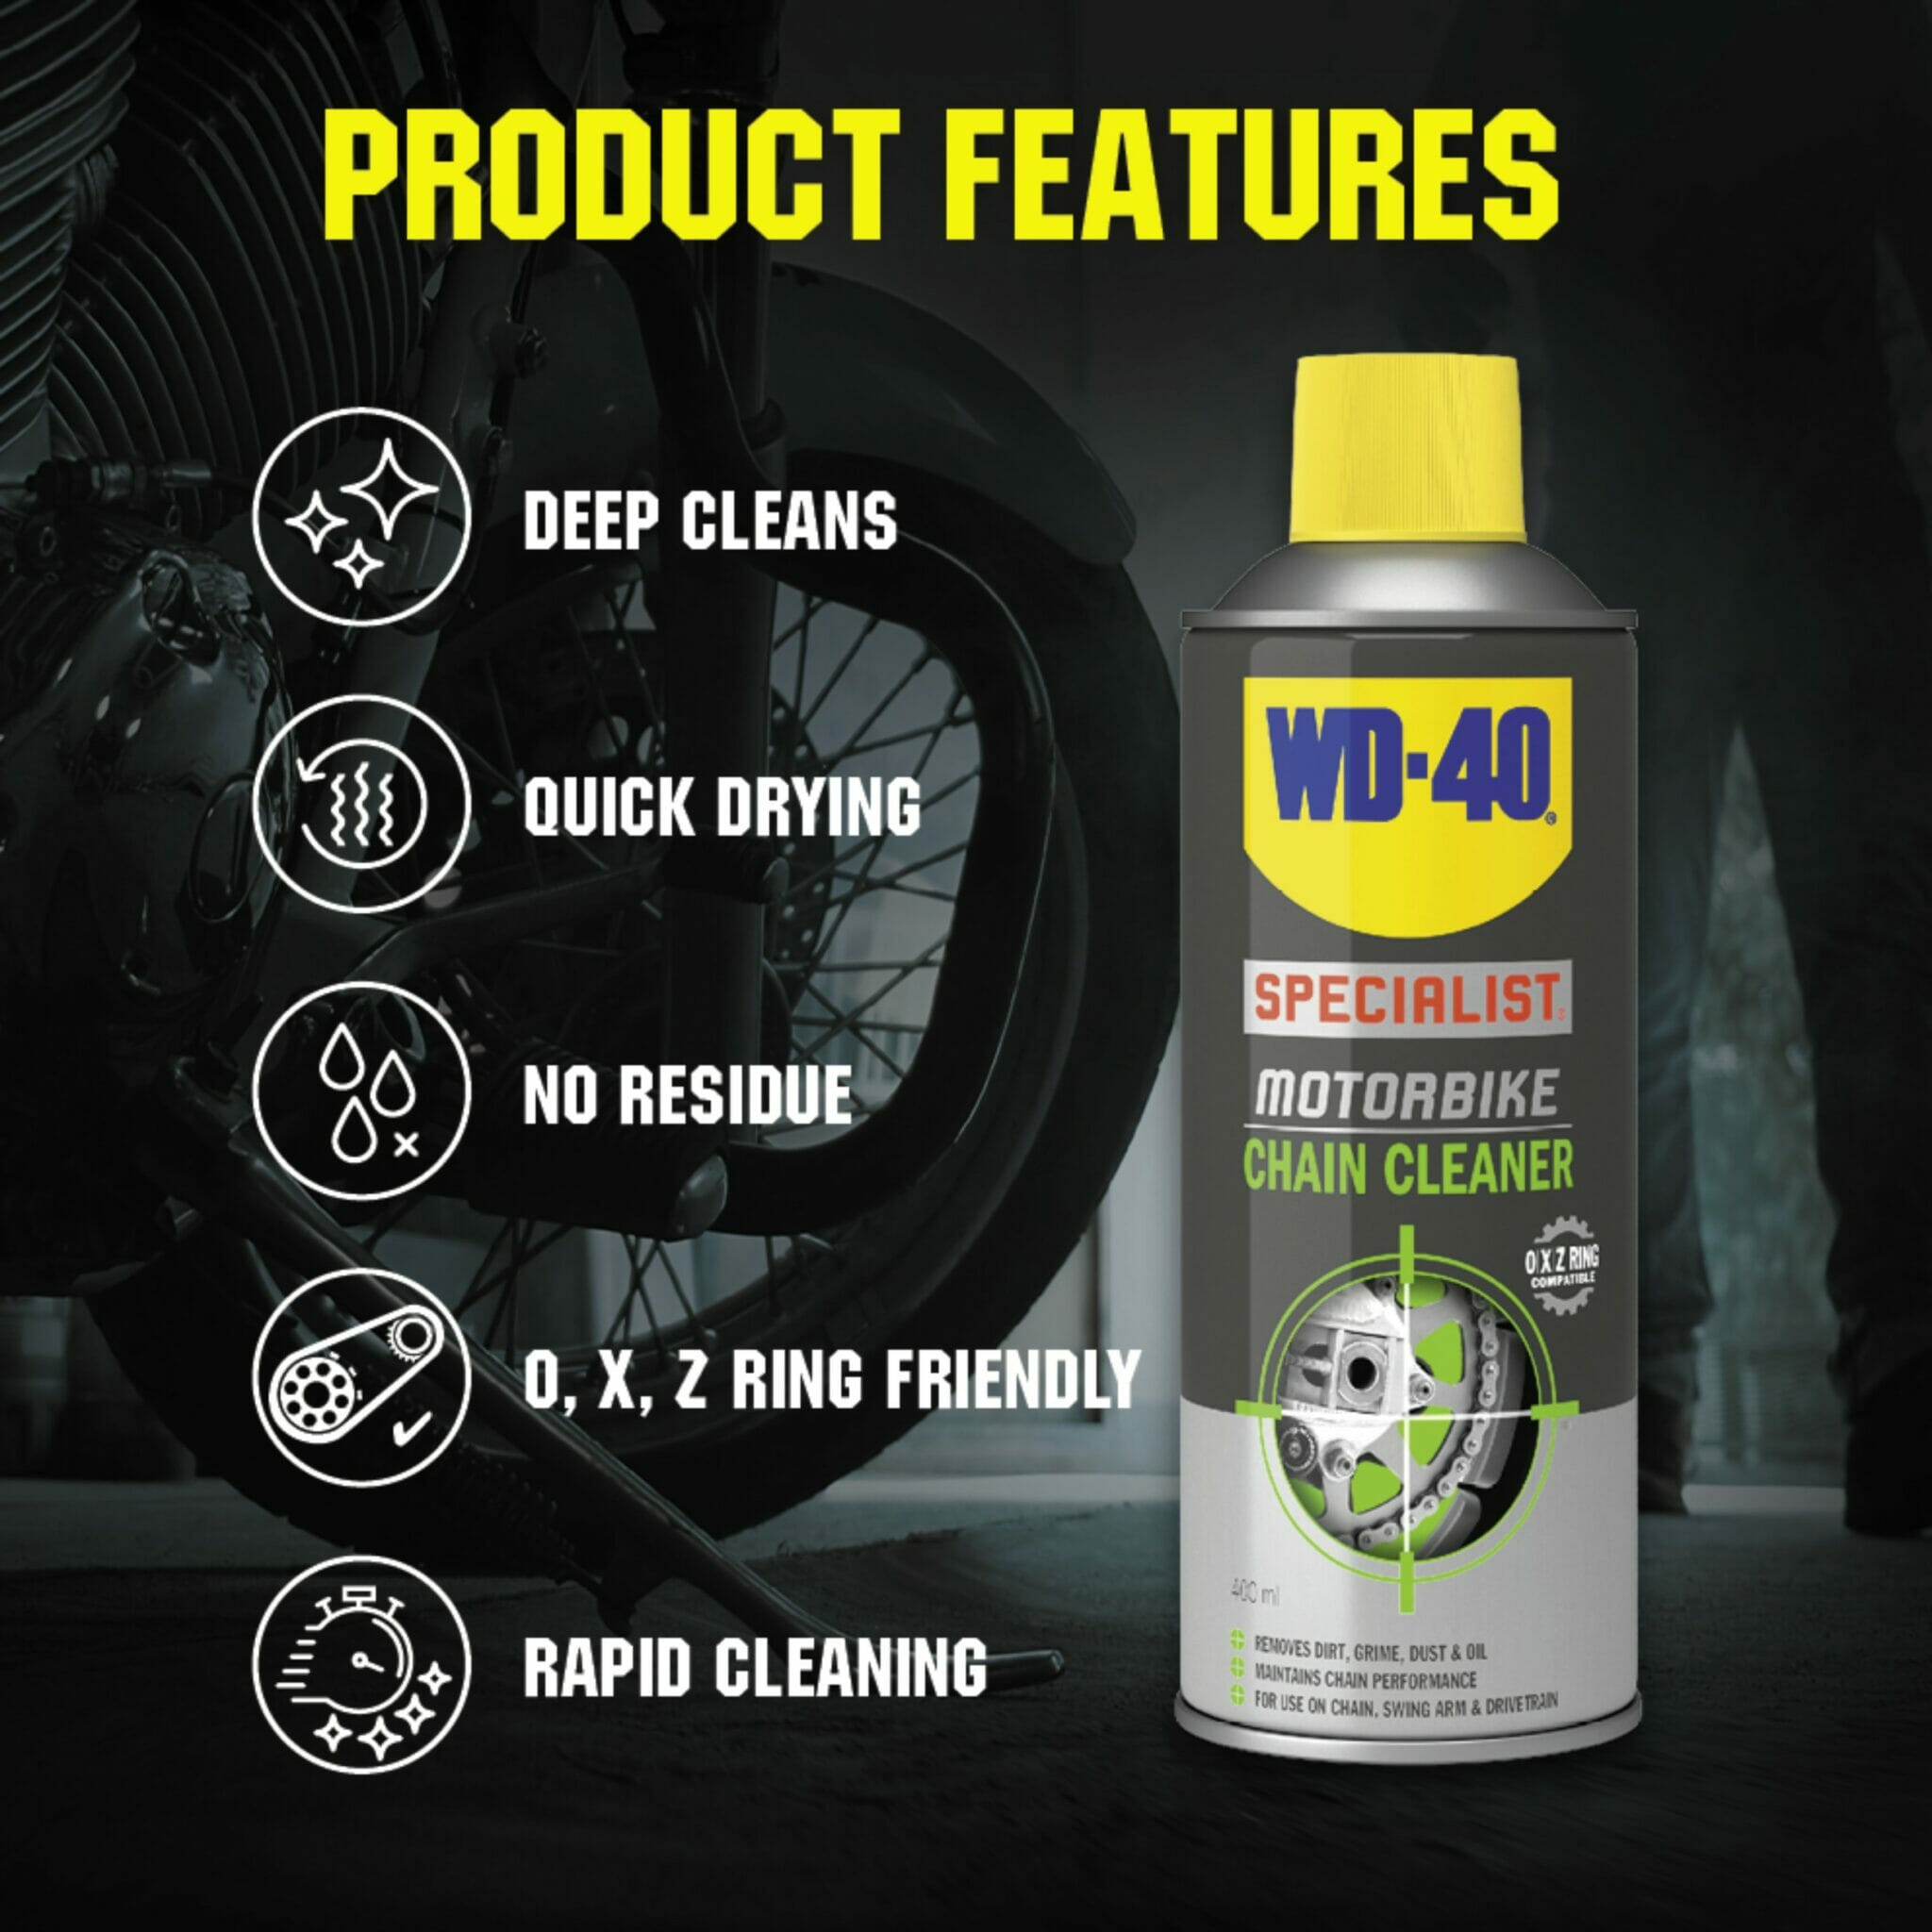 uk wd40 specialist motorbike chain cleaner 400ml product features lifestyle background